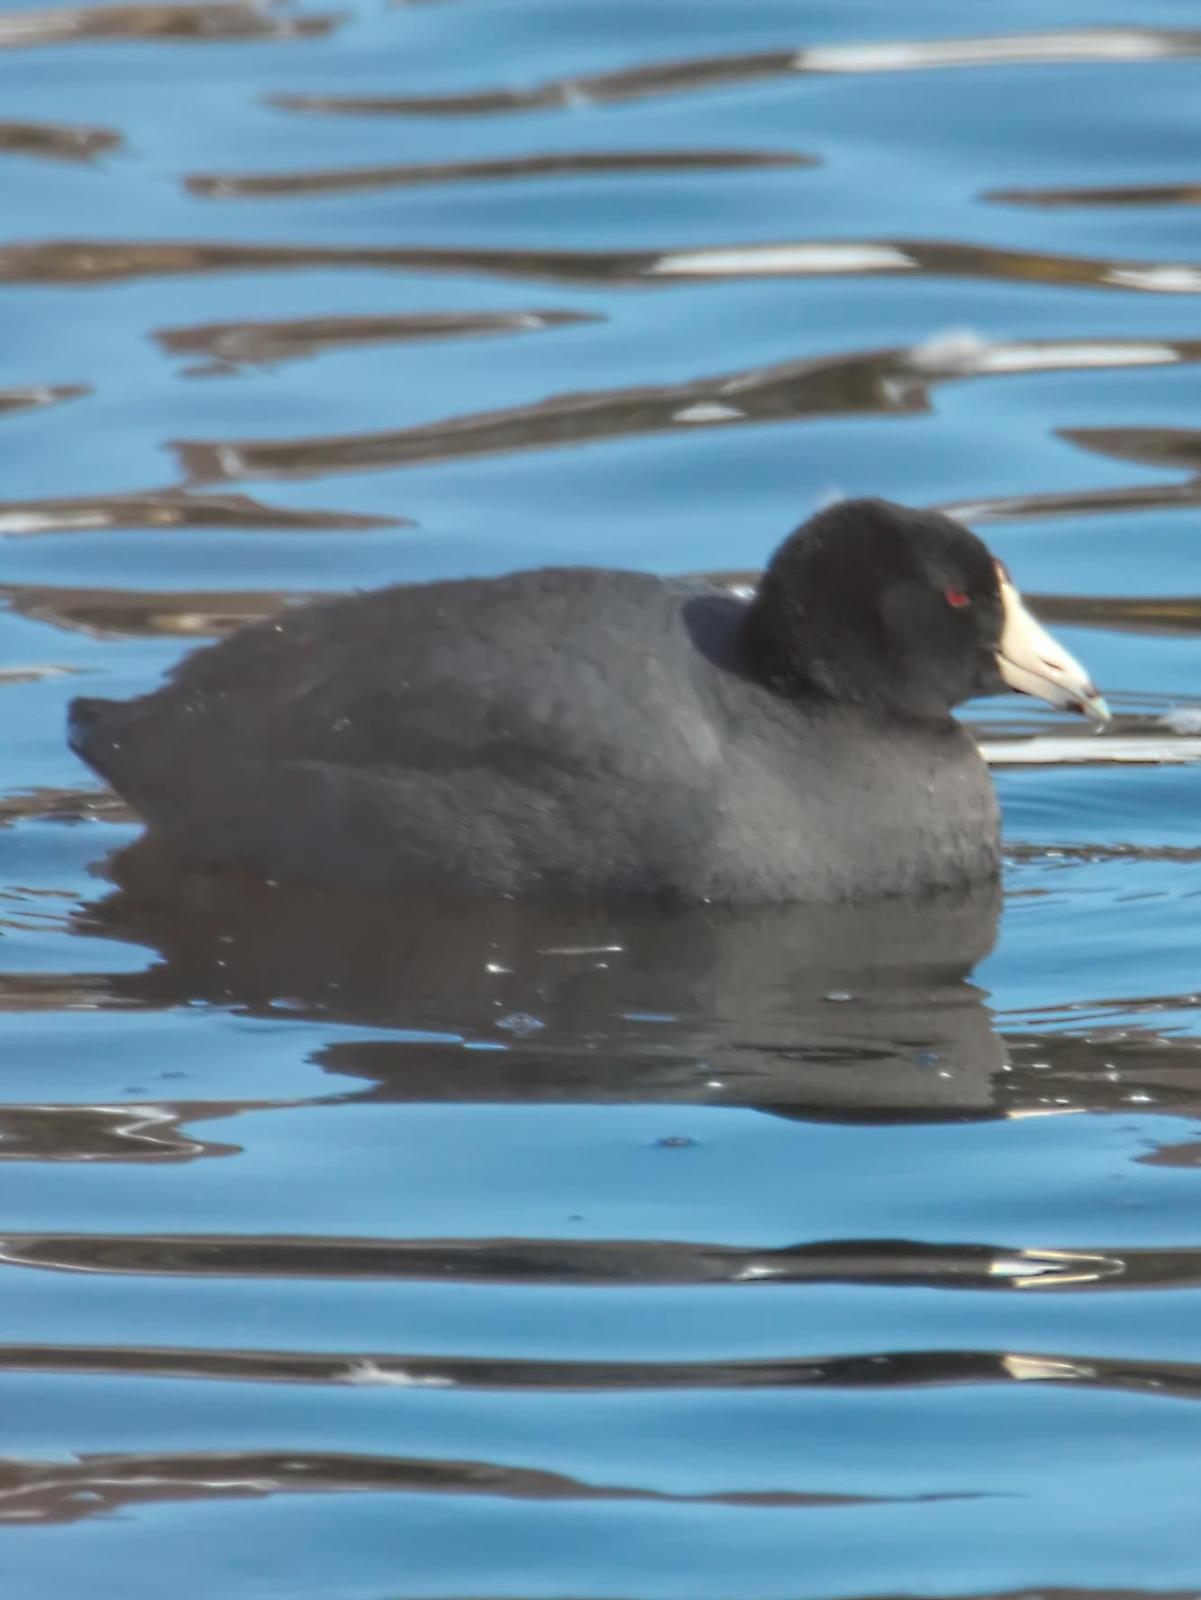 American Coot (Red-shielded) Photo by Dan Tallman